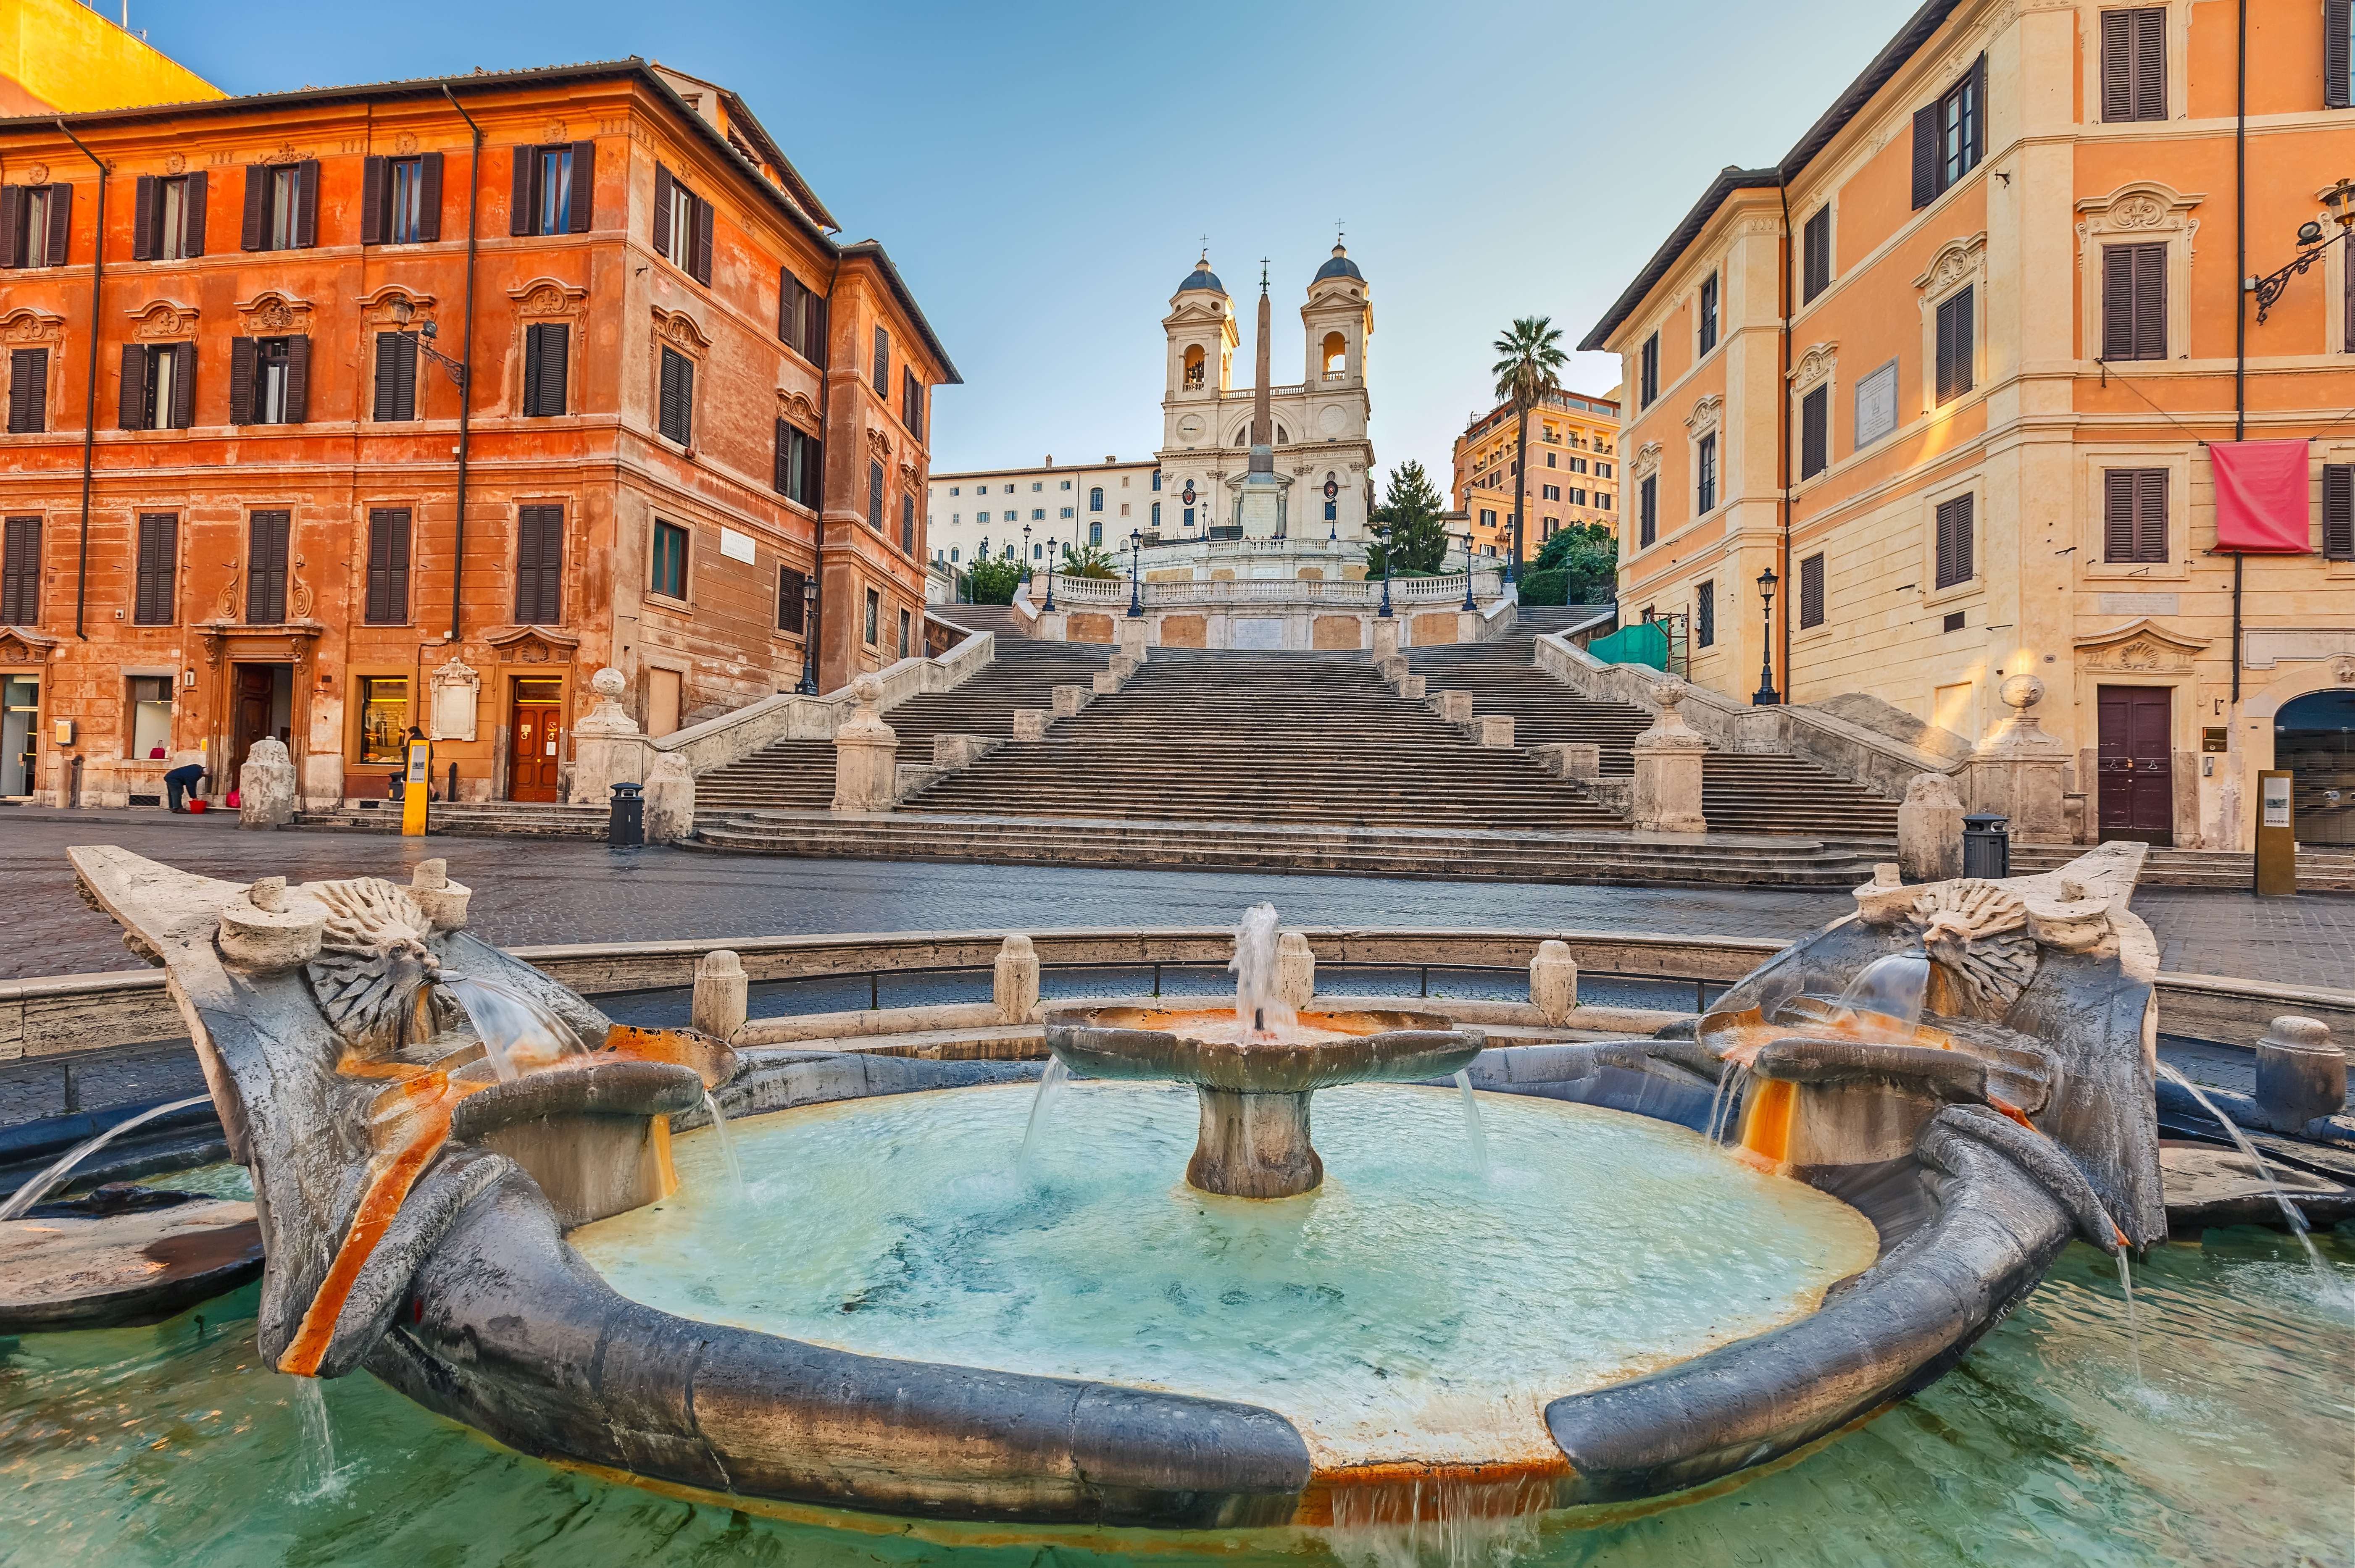 Barcaccia and Spanish Steps in Rome